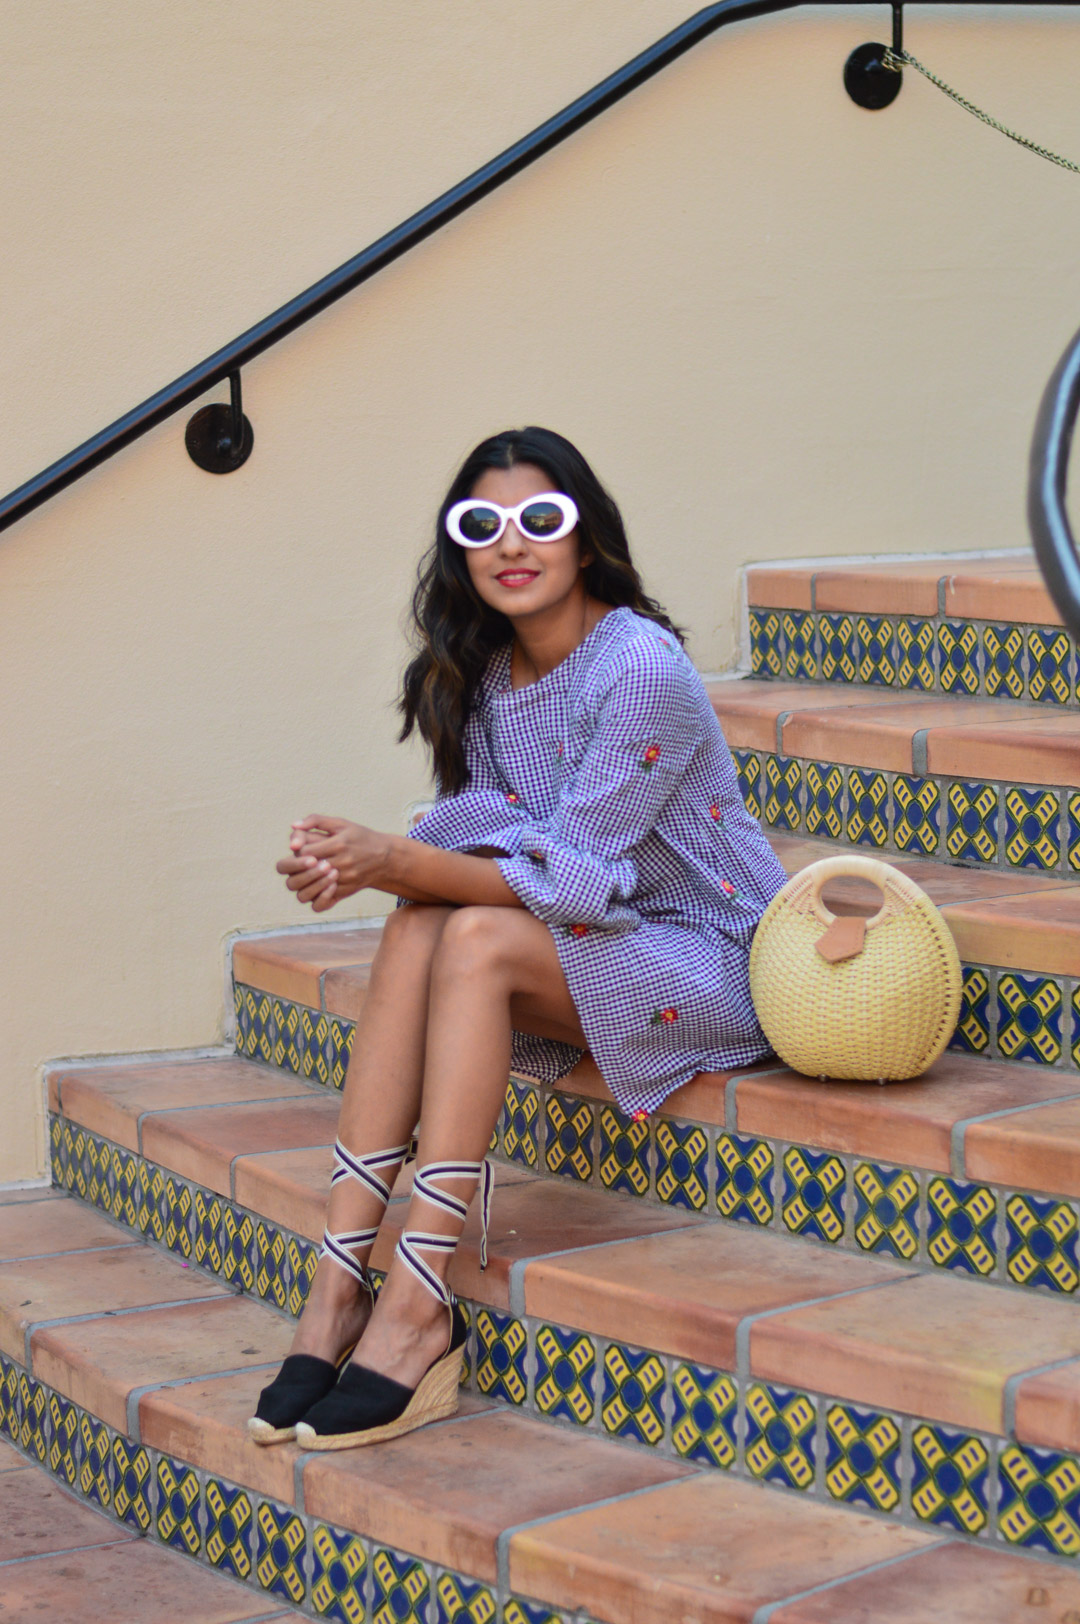 gingham-embroidered-dress-transition-style-fashion-blogger-outfit 3